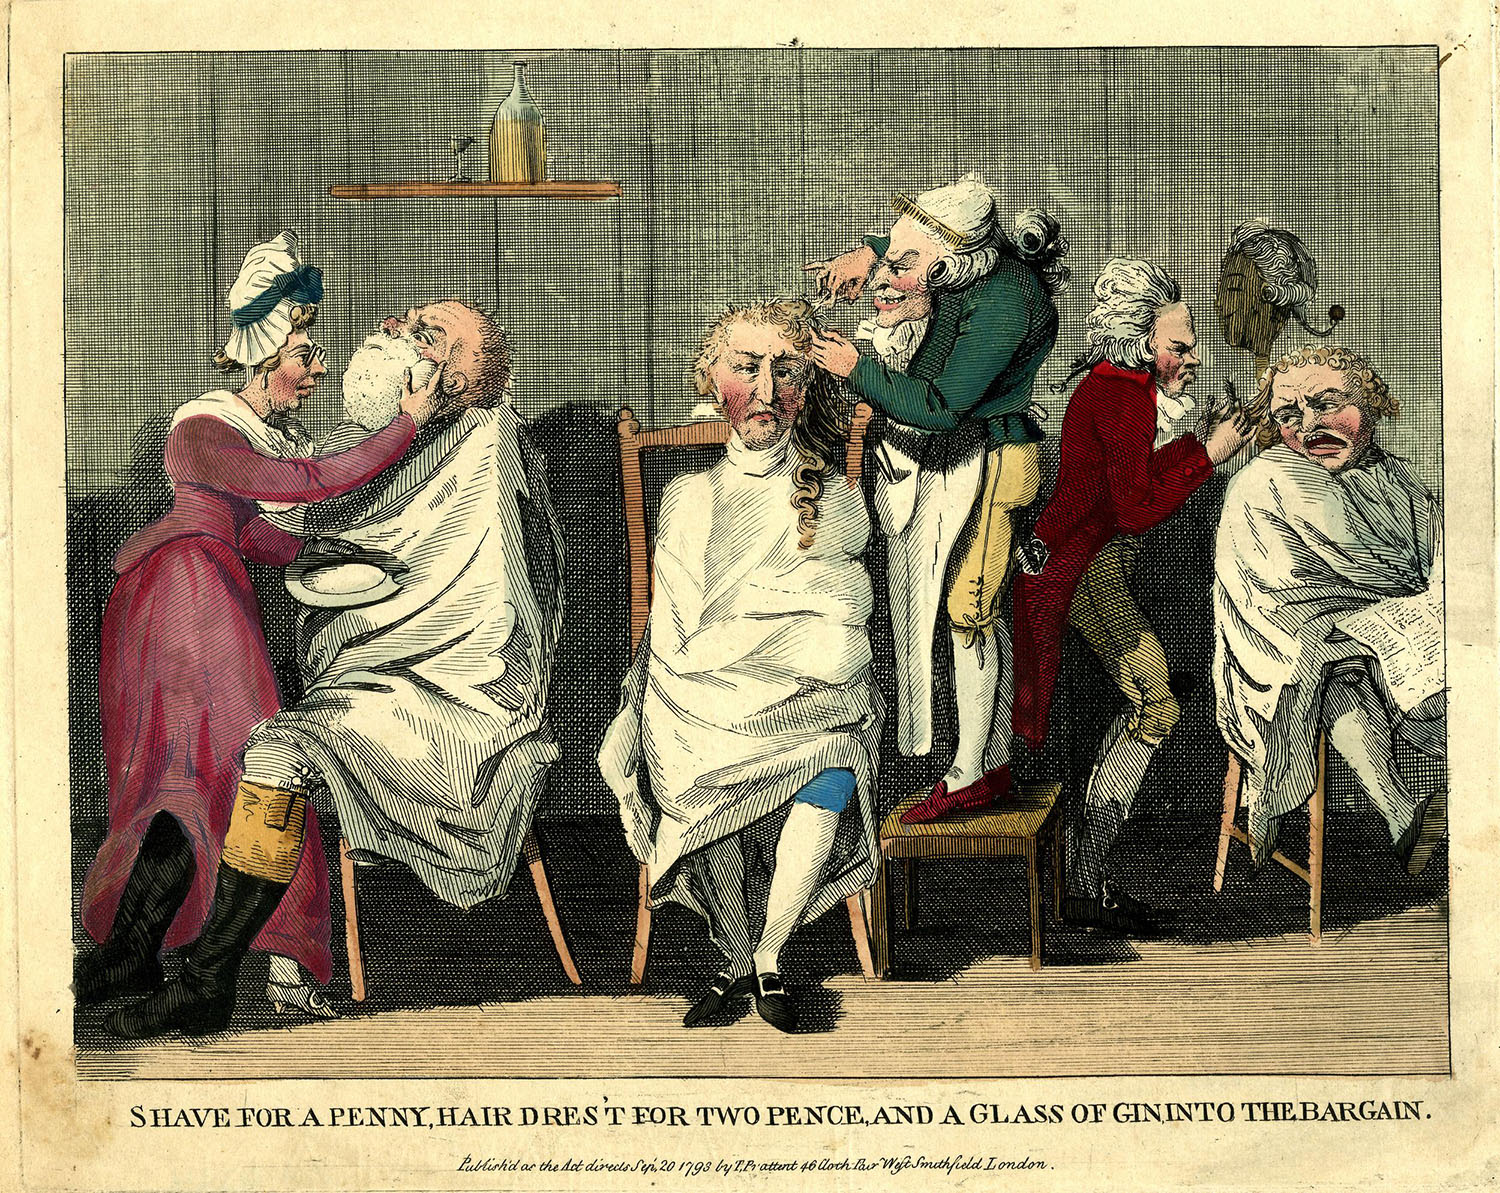 Shave for a Penny, Hair Dres't for Two Pence, And a Glass of Gin into the Bargain, 1793. Courtesy of the British Museum.